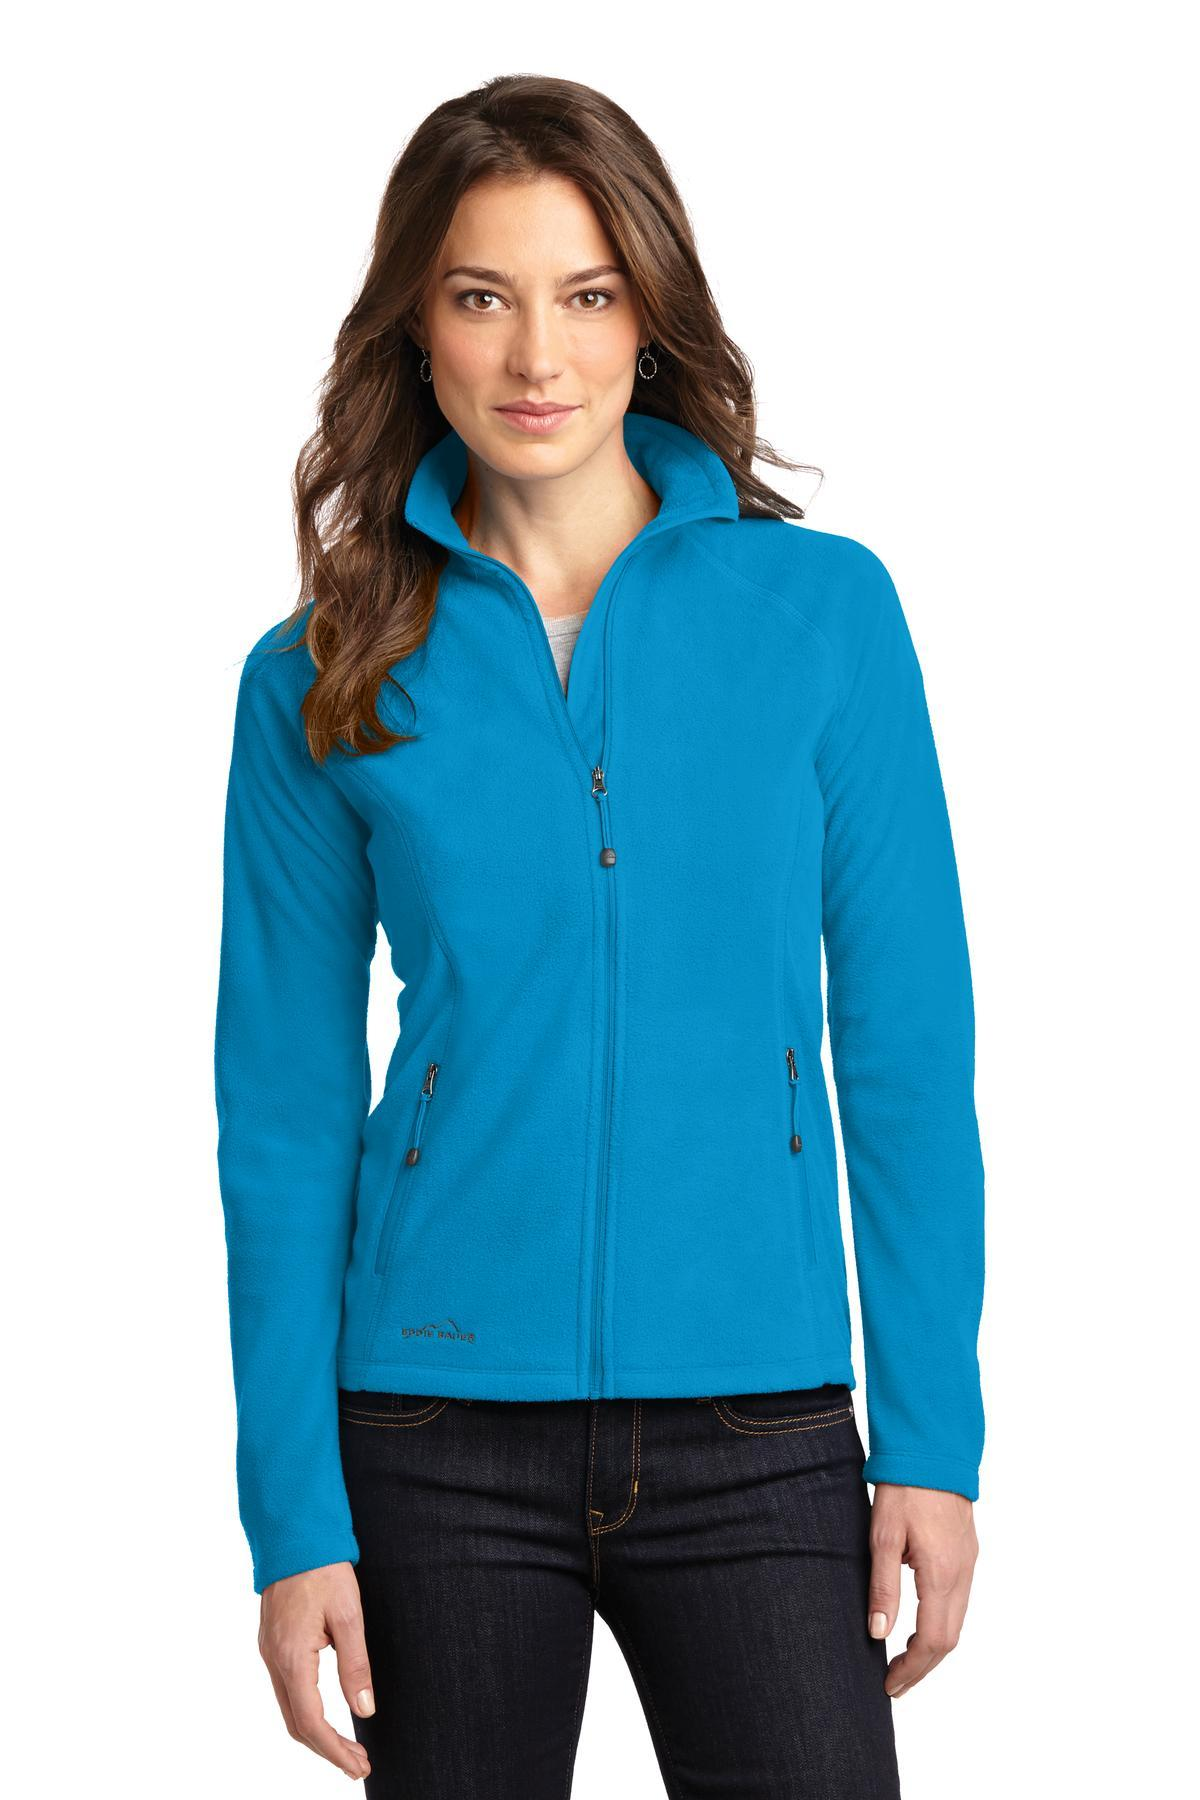 Eddie Bauer Ladies FullZip Microfleece Jacket EB225 Peak